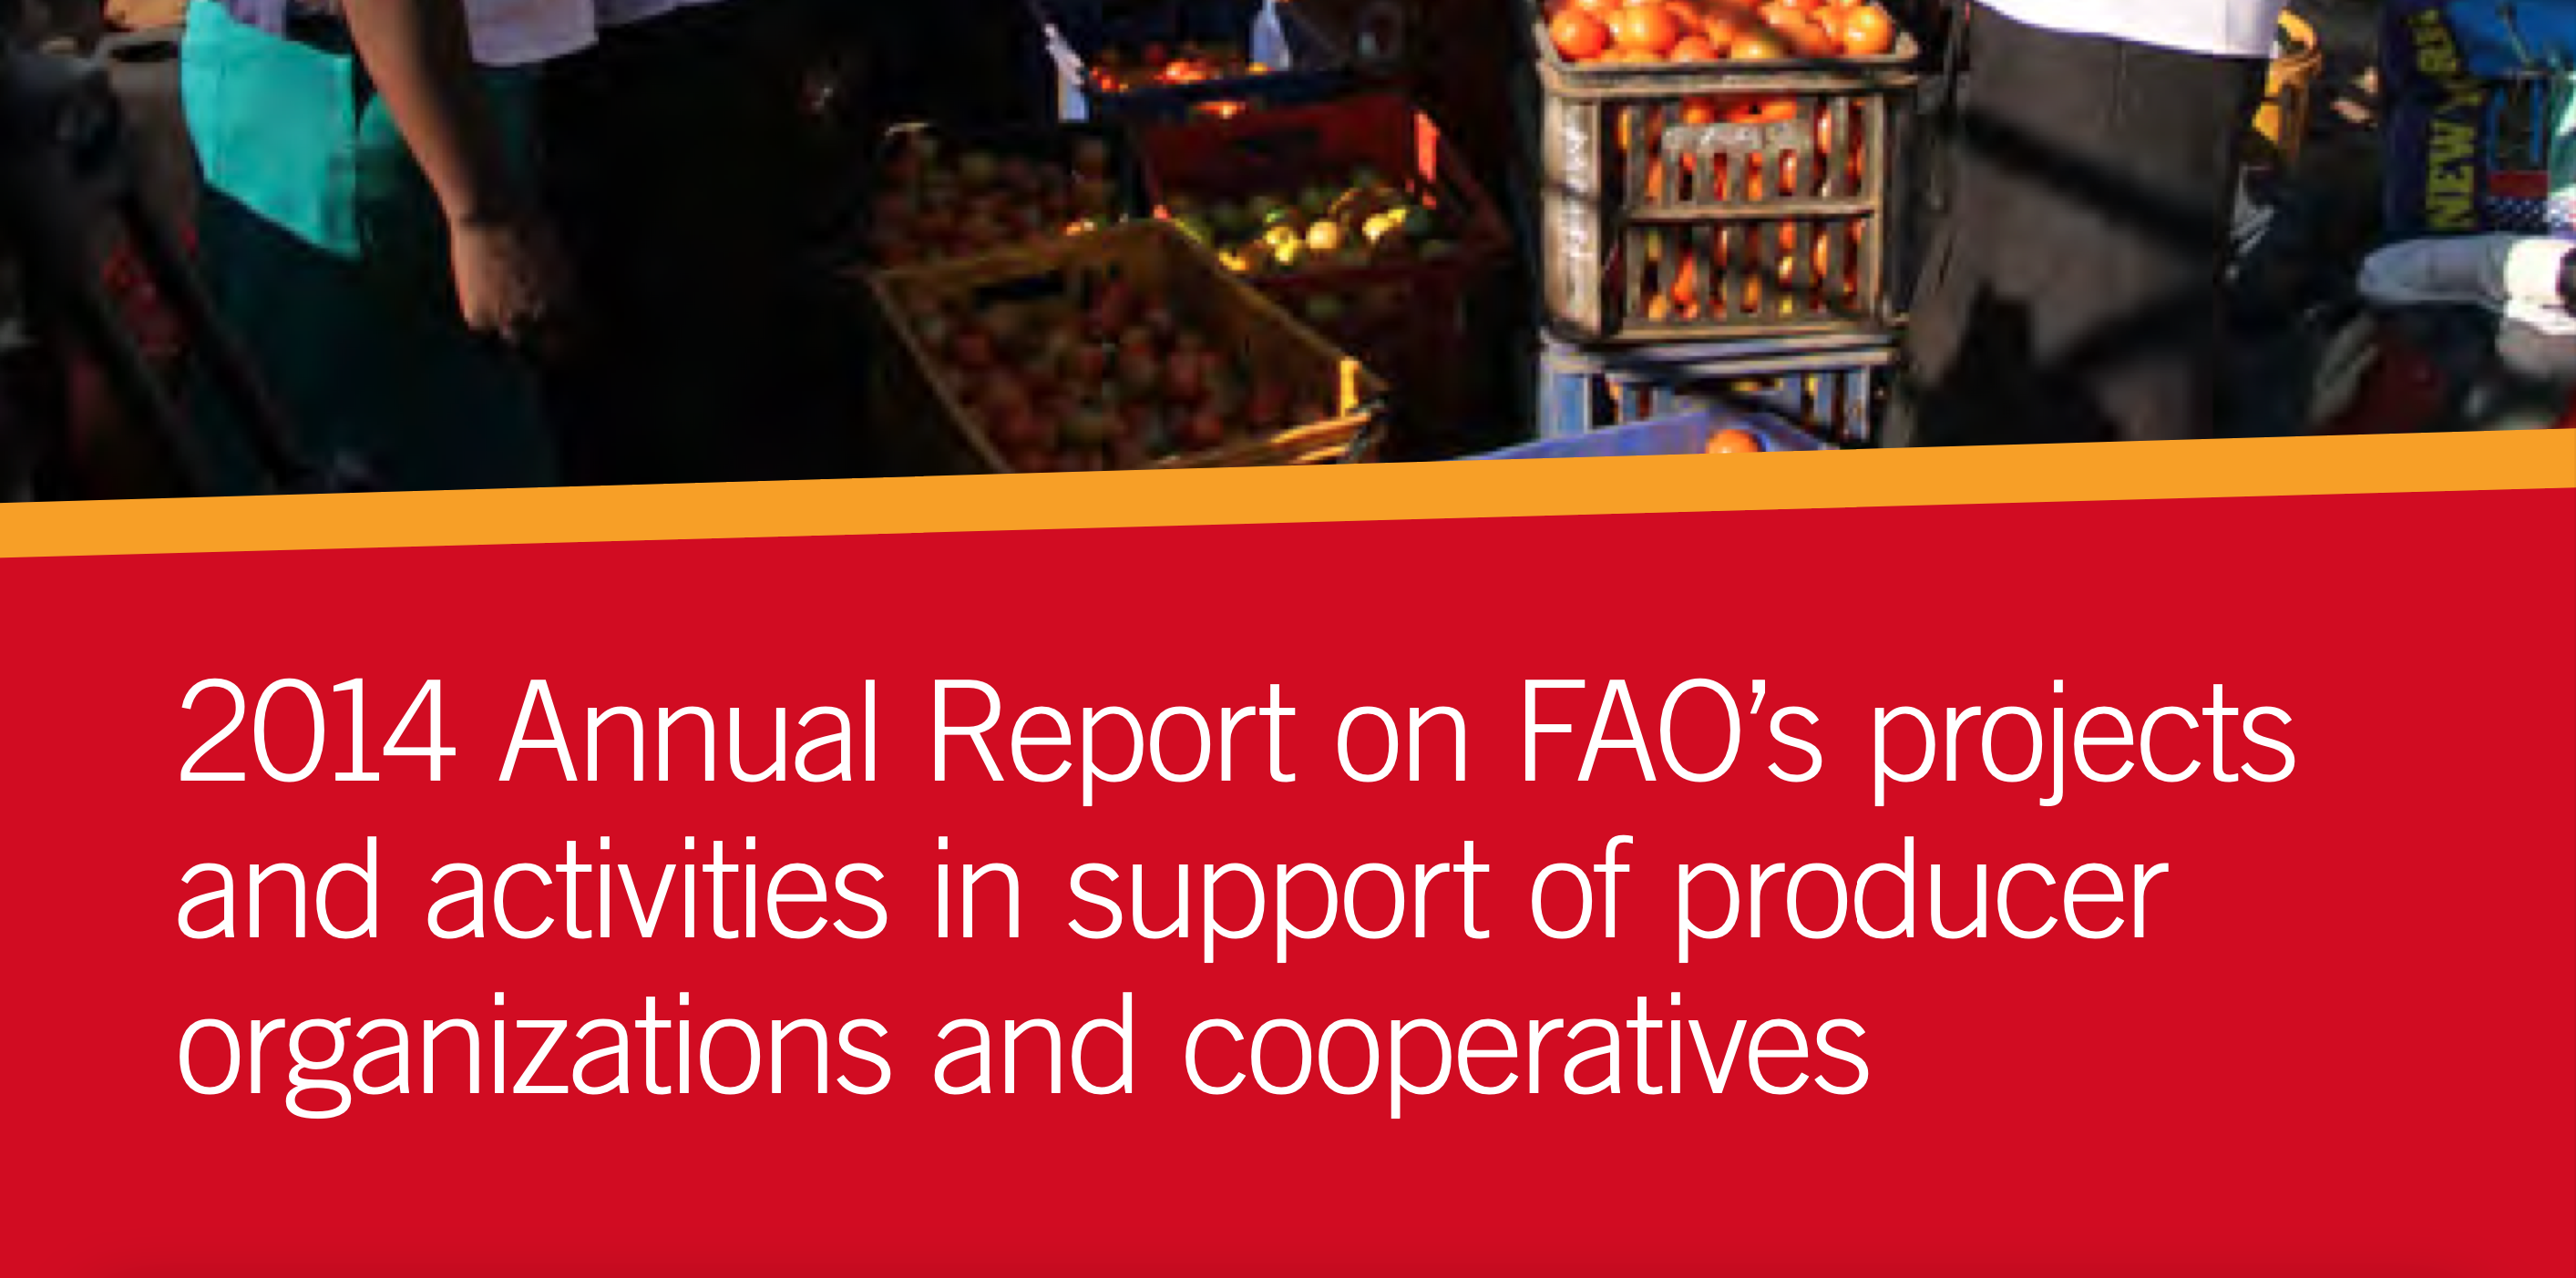 2014 Annual Report on FAO's projects and activities in support of producer organizations and cooperatives